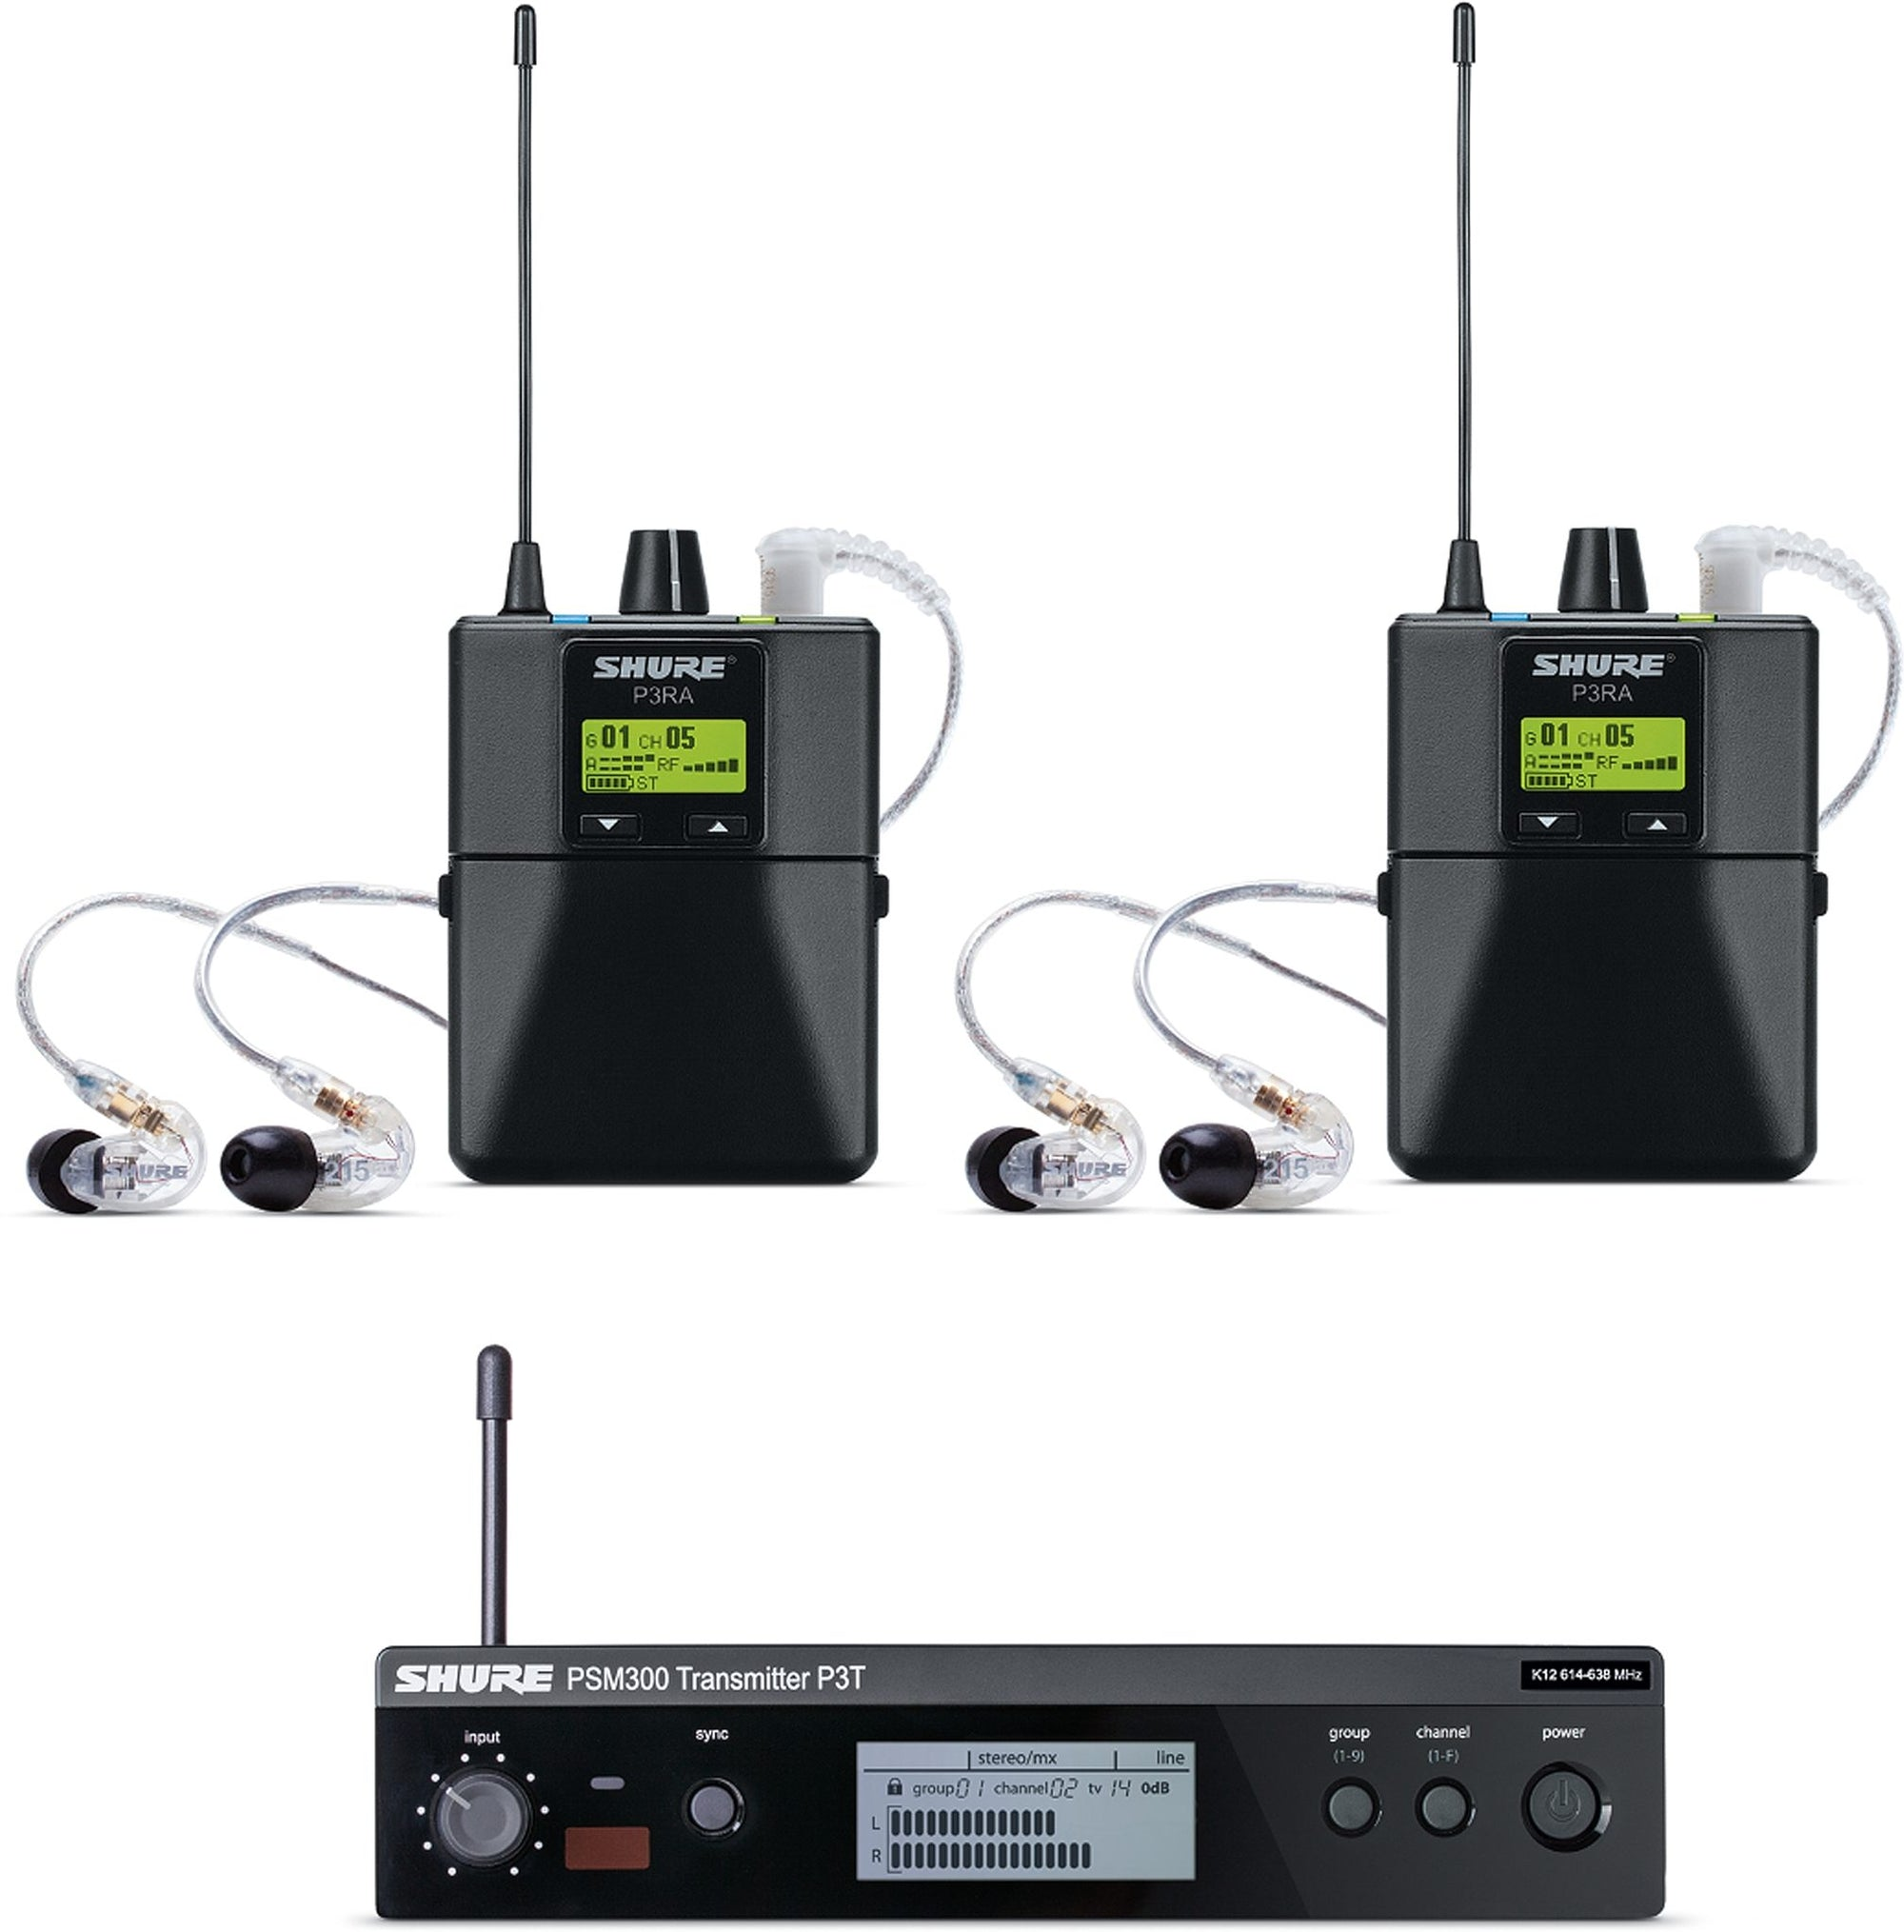 Shure PSM 300 Twin Pack PRO Wireless In-Ear Monitor IEM System with SE215 Earphones, Band G20 (488.150 - 511.850 MHz)